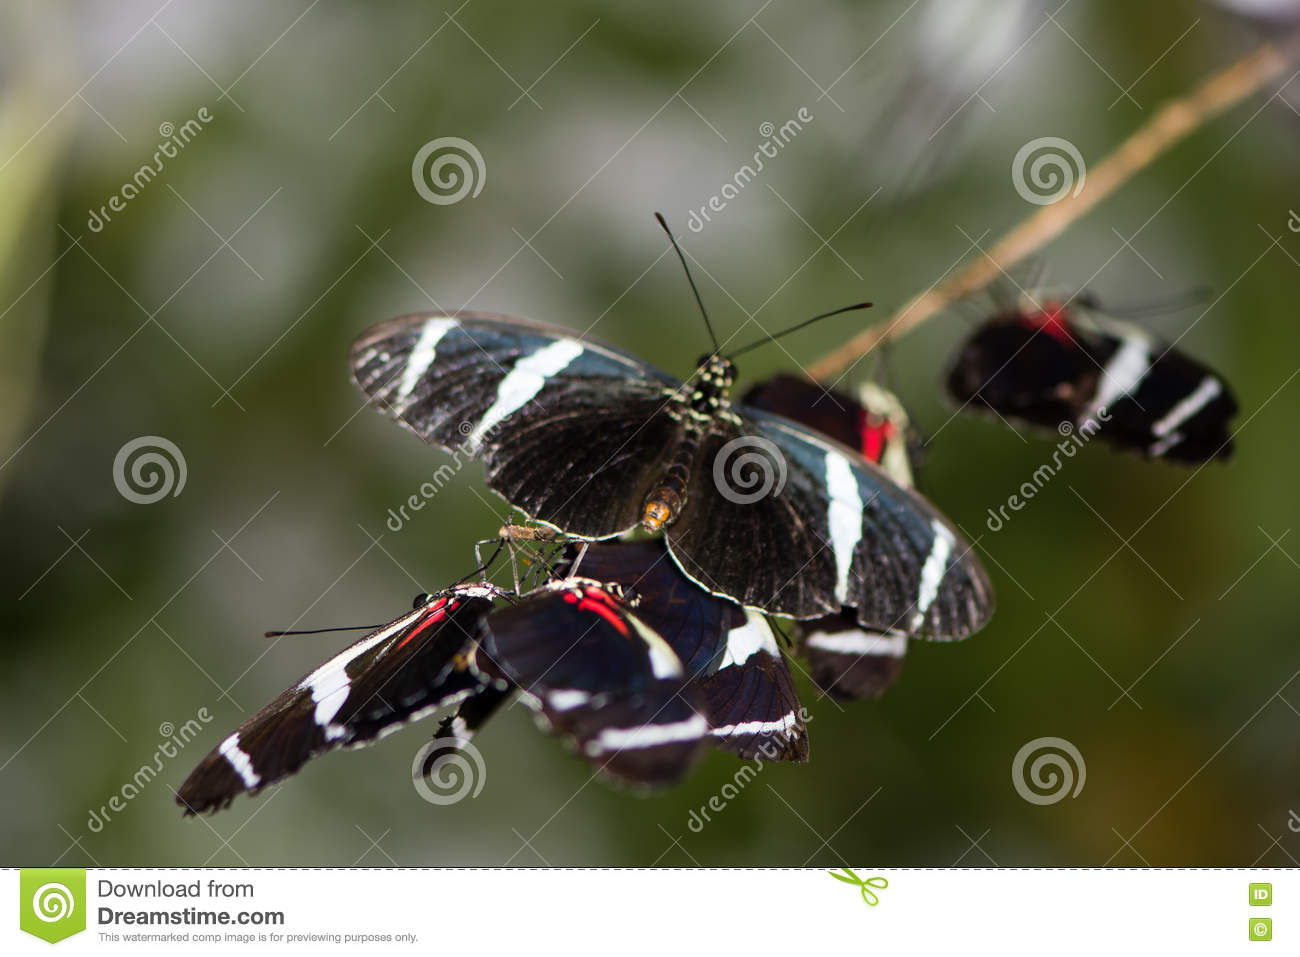 Bộ sưu tập cánh vẩy 4 - Page 46 Antiochus-longwing-butterflies-heliconius-antiochus-mass-central-southern-american-heliconiid-insects-family-79821230